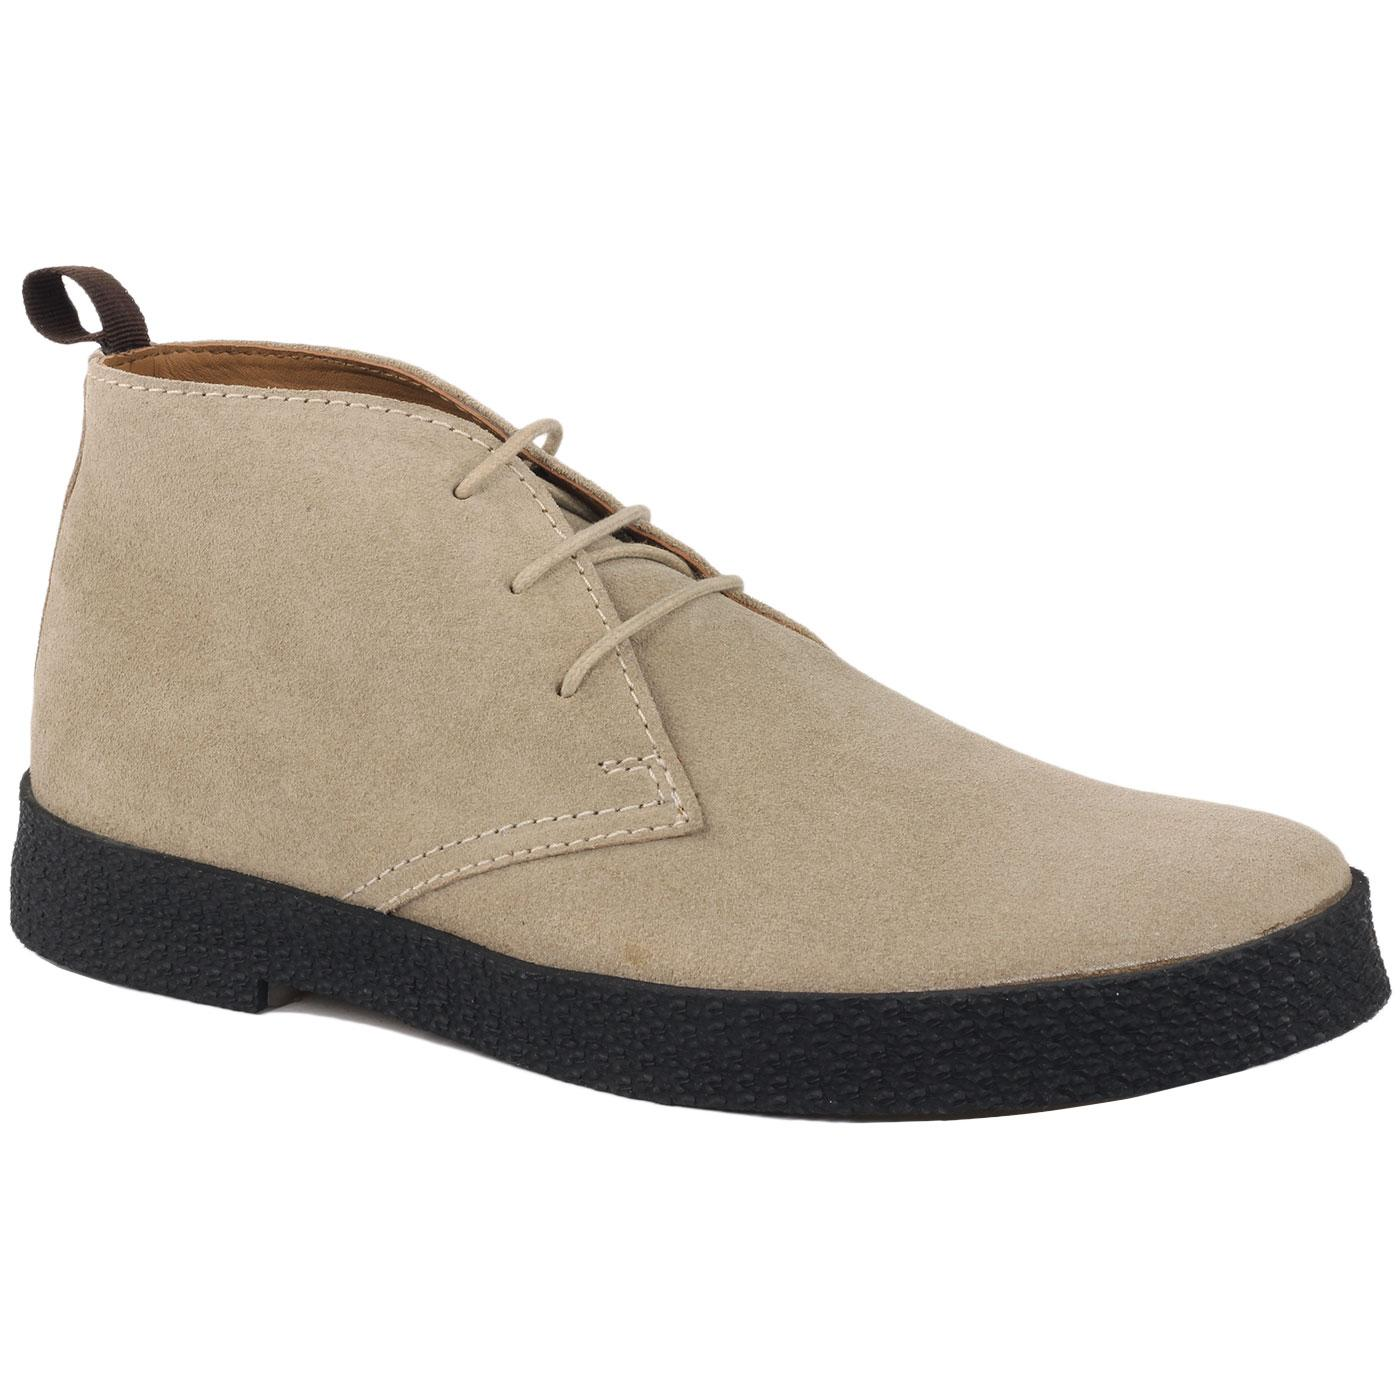 Madcap England Cisco 60s Mod Suede Playboy Chukka Boots in Ice